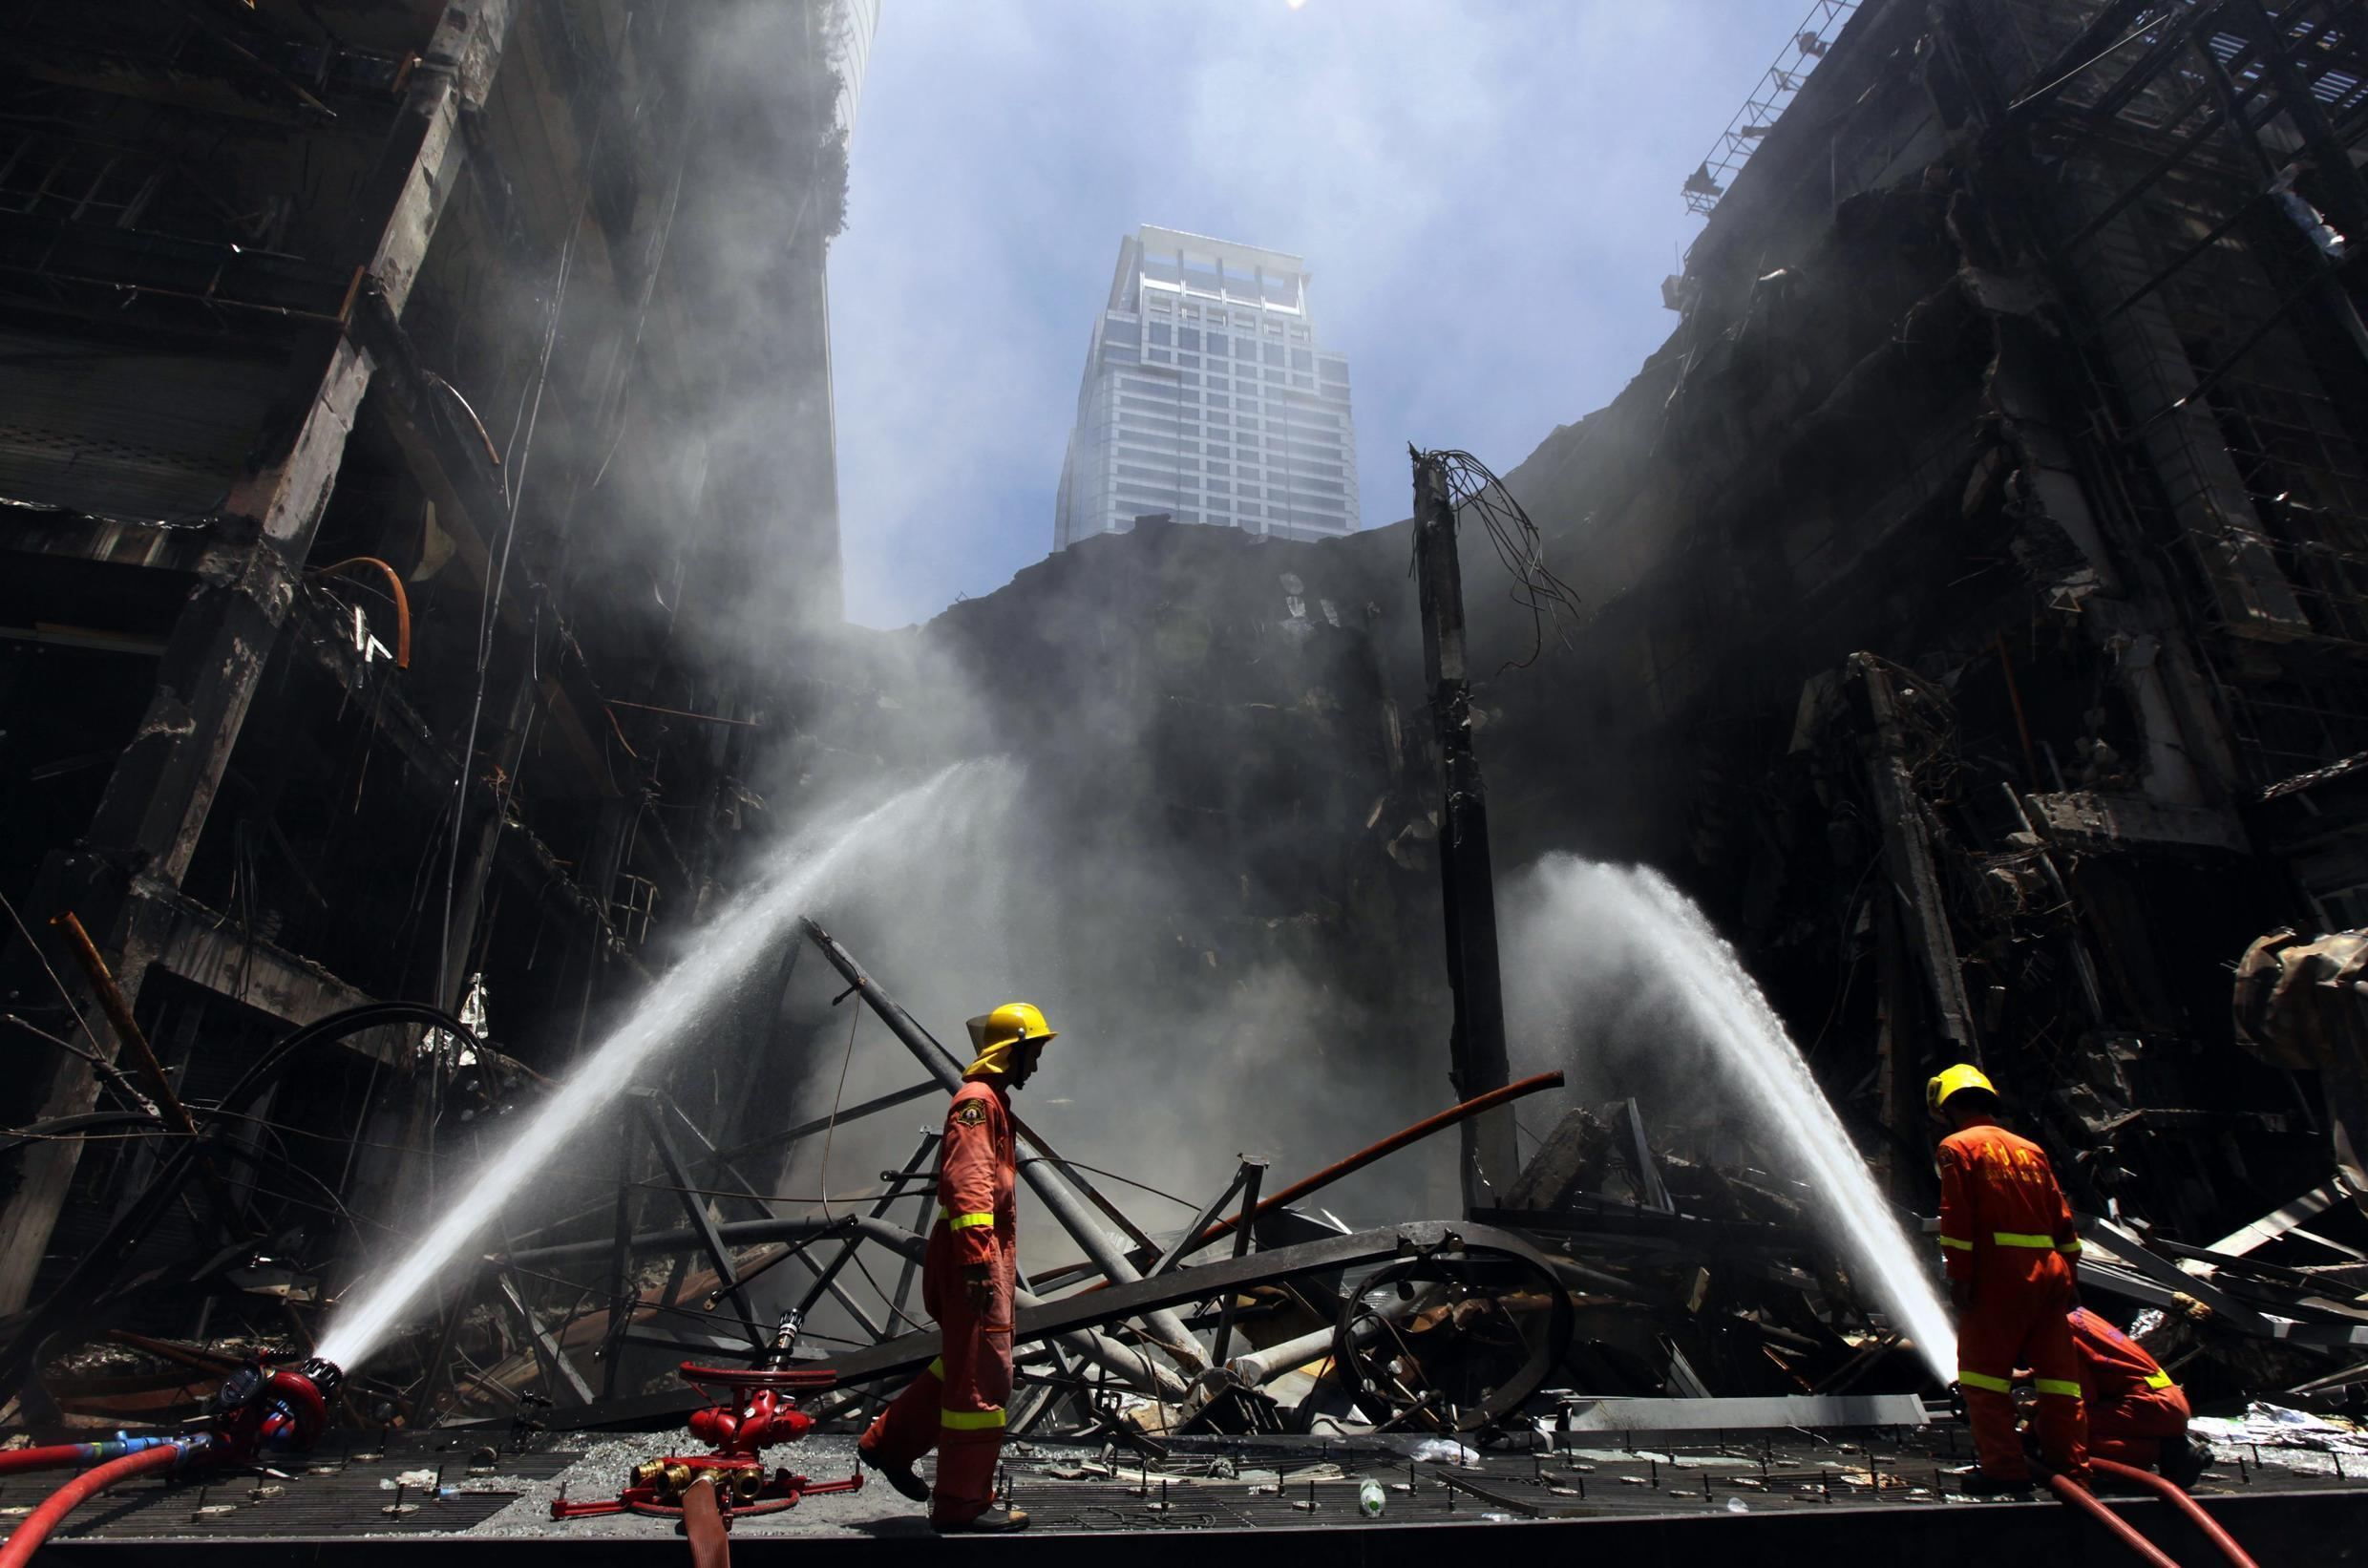 Fire-fighters douse the Central World shopping mall building in Bangkok